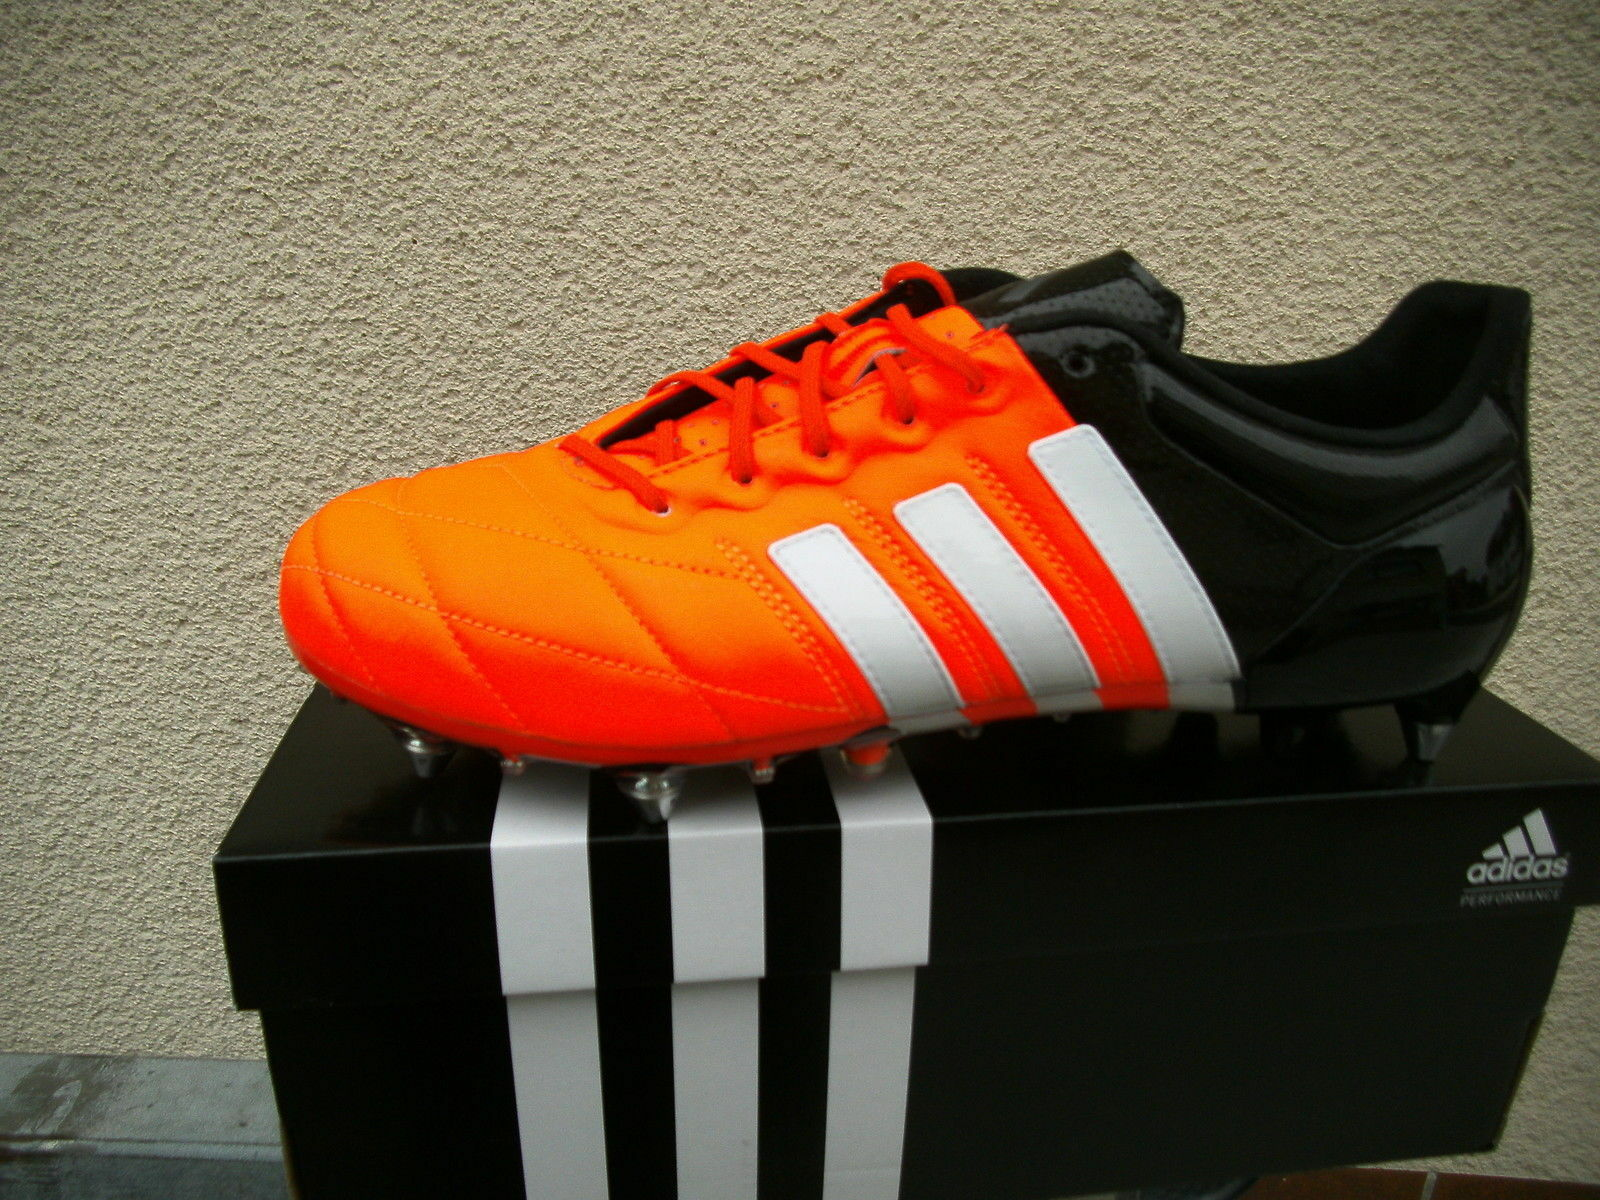 Adidas ACE 15.1 SG Leather (B32814) Orange-Schwarz-Weiß  Gr. Gr. Gr. 41 1 3 - 43 1 3 - 4 1b7c4e